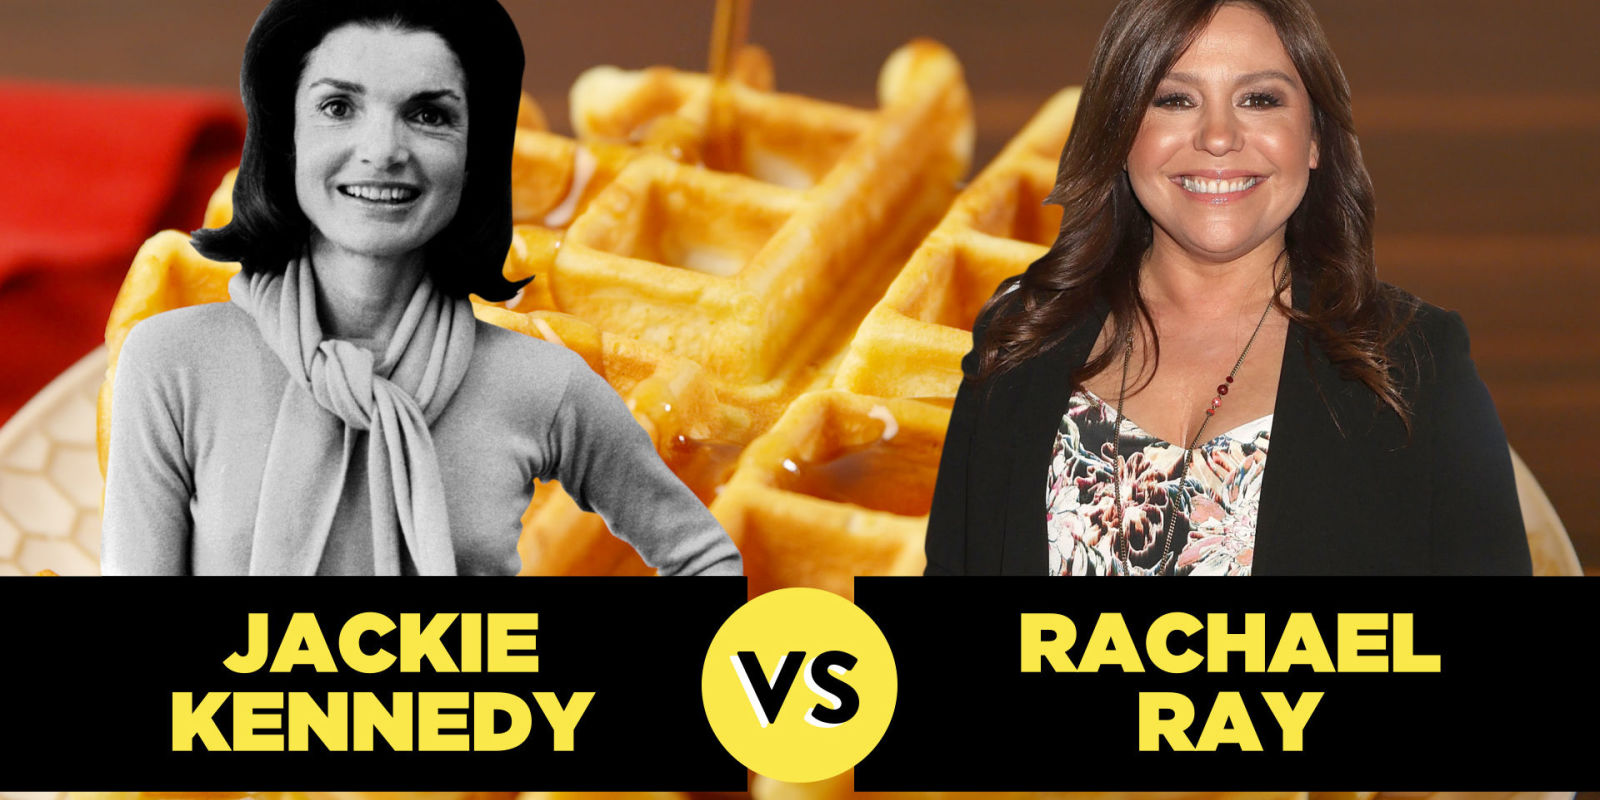 Rachael Ray Vs Jackie Kennedy Whose Waffles Are Better